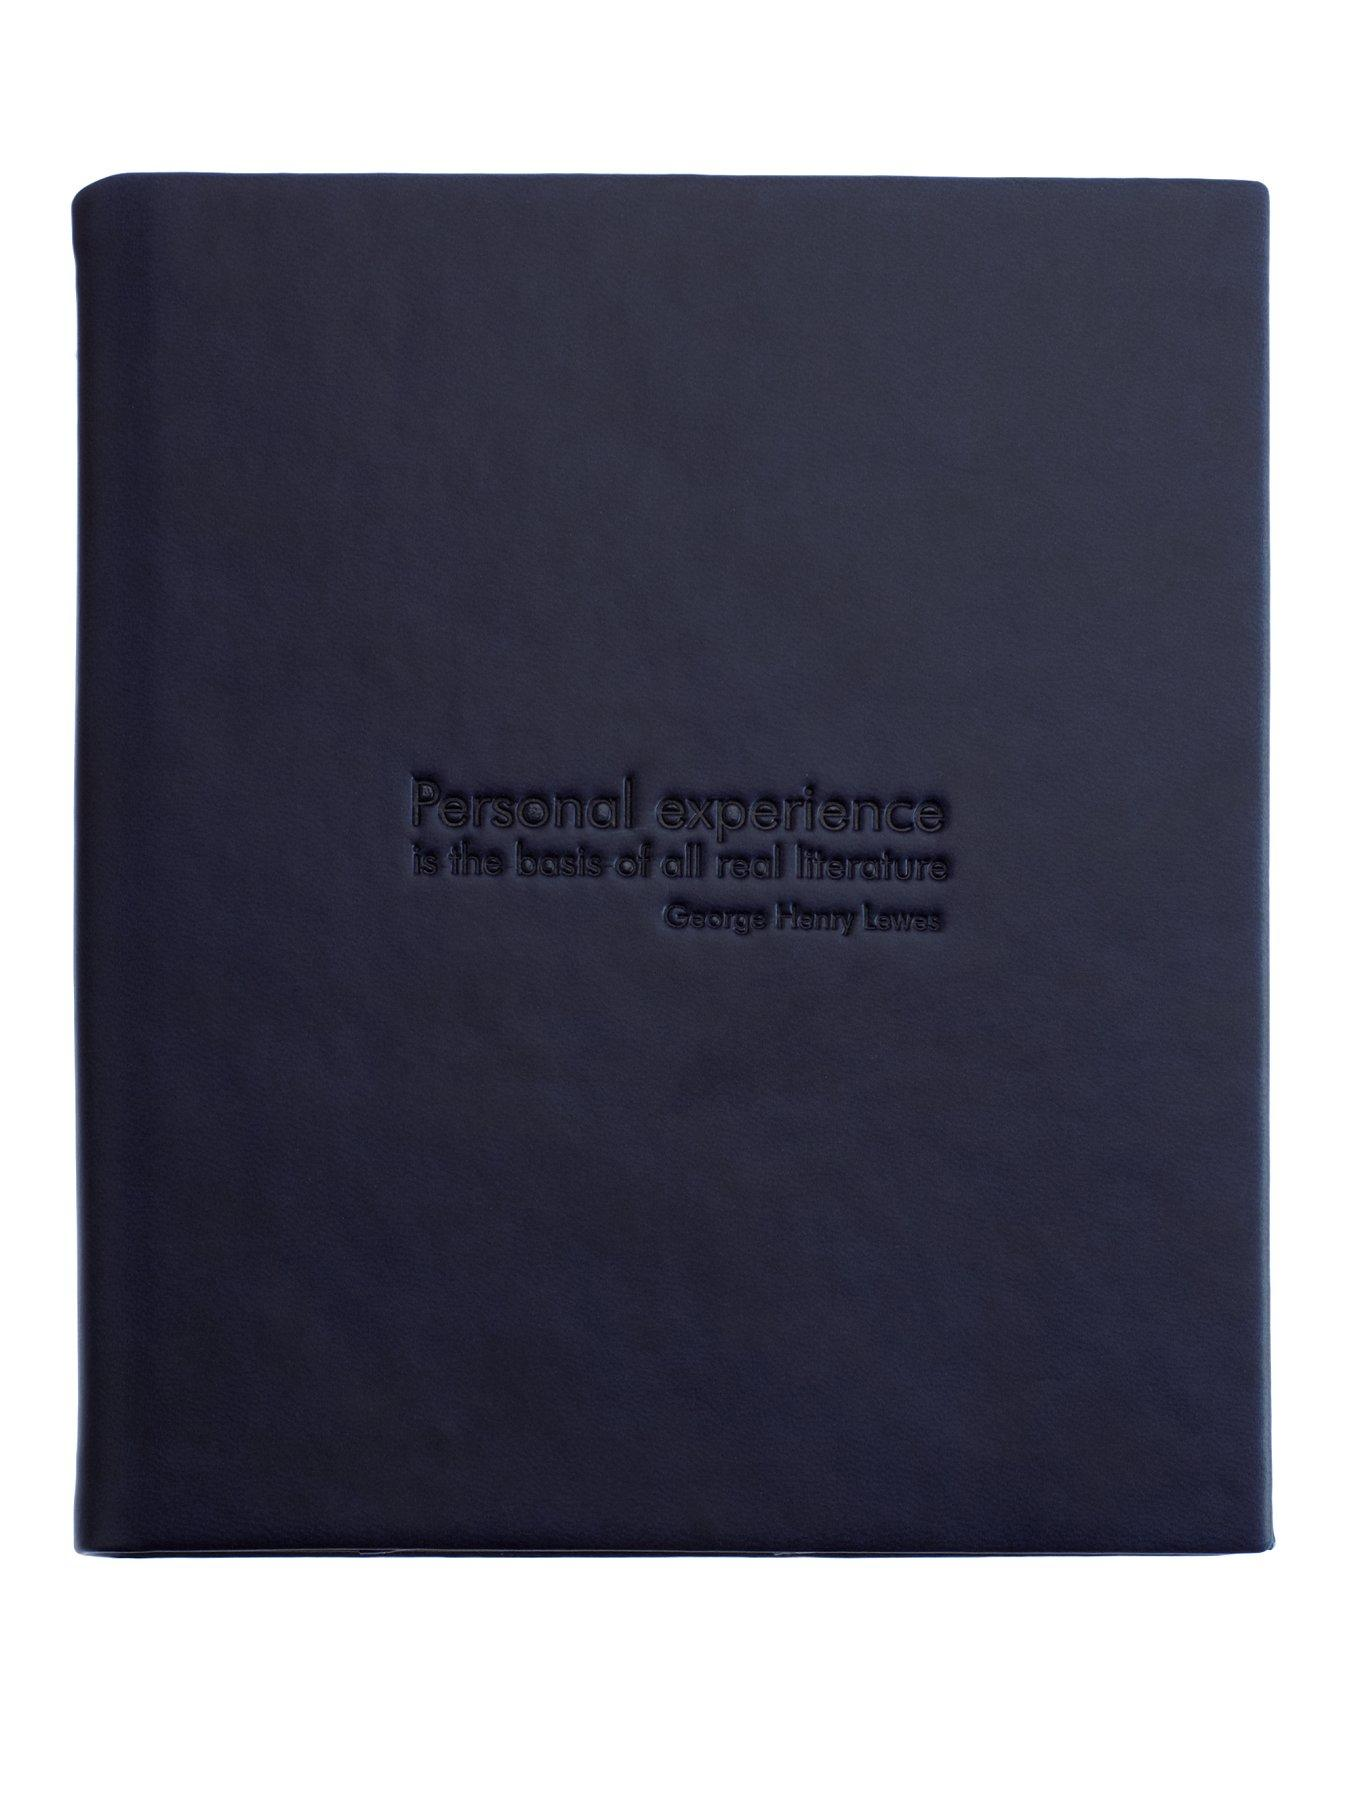 Simple Touch and Glow e-reader Lewes Quote - Indigo